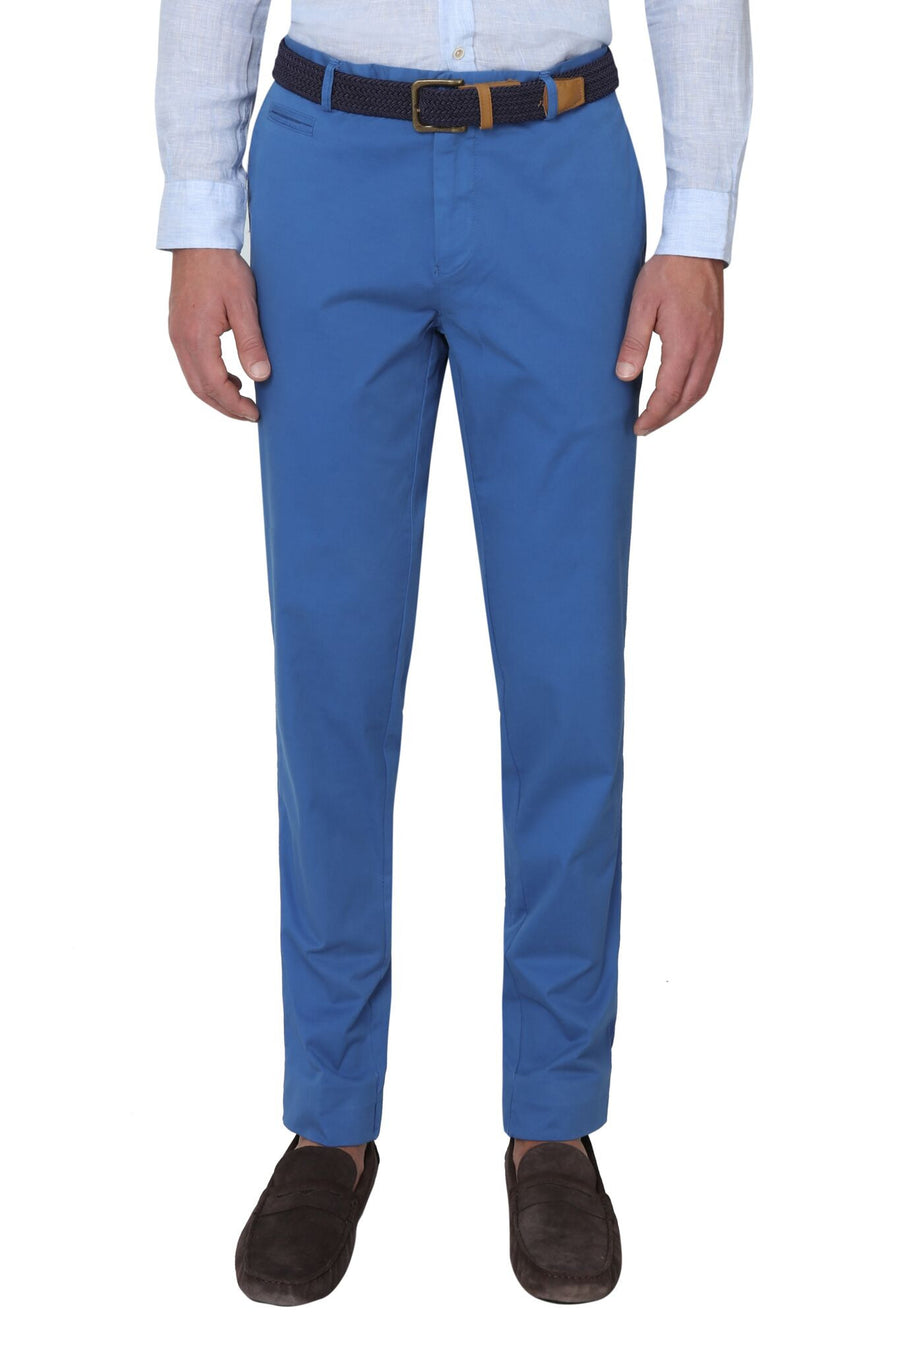 Bennett Stretch Washed European Cotton Chino in Ocean Blue